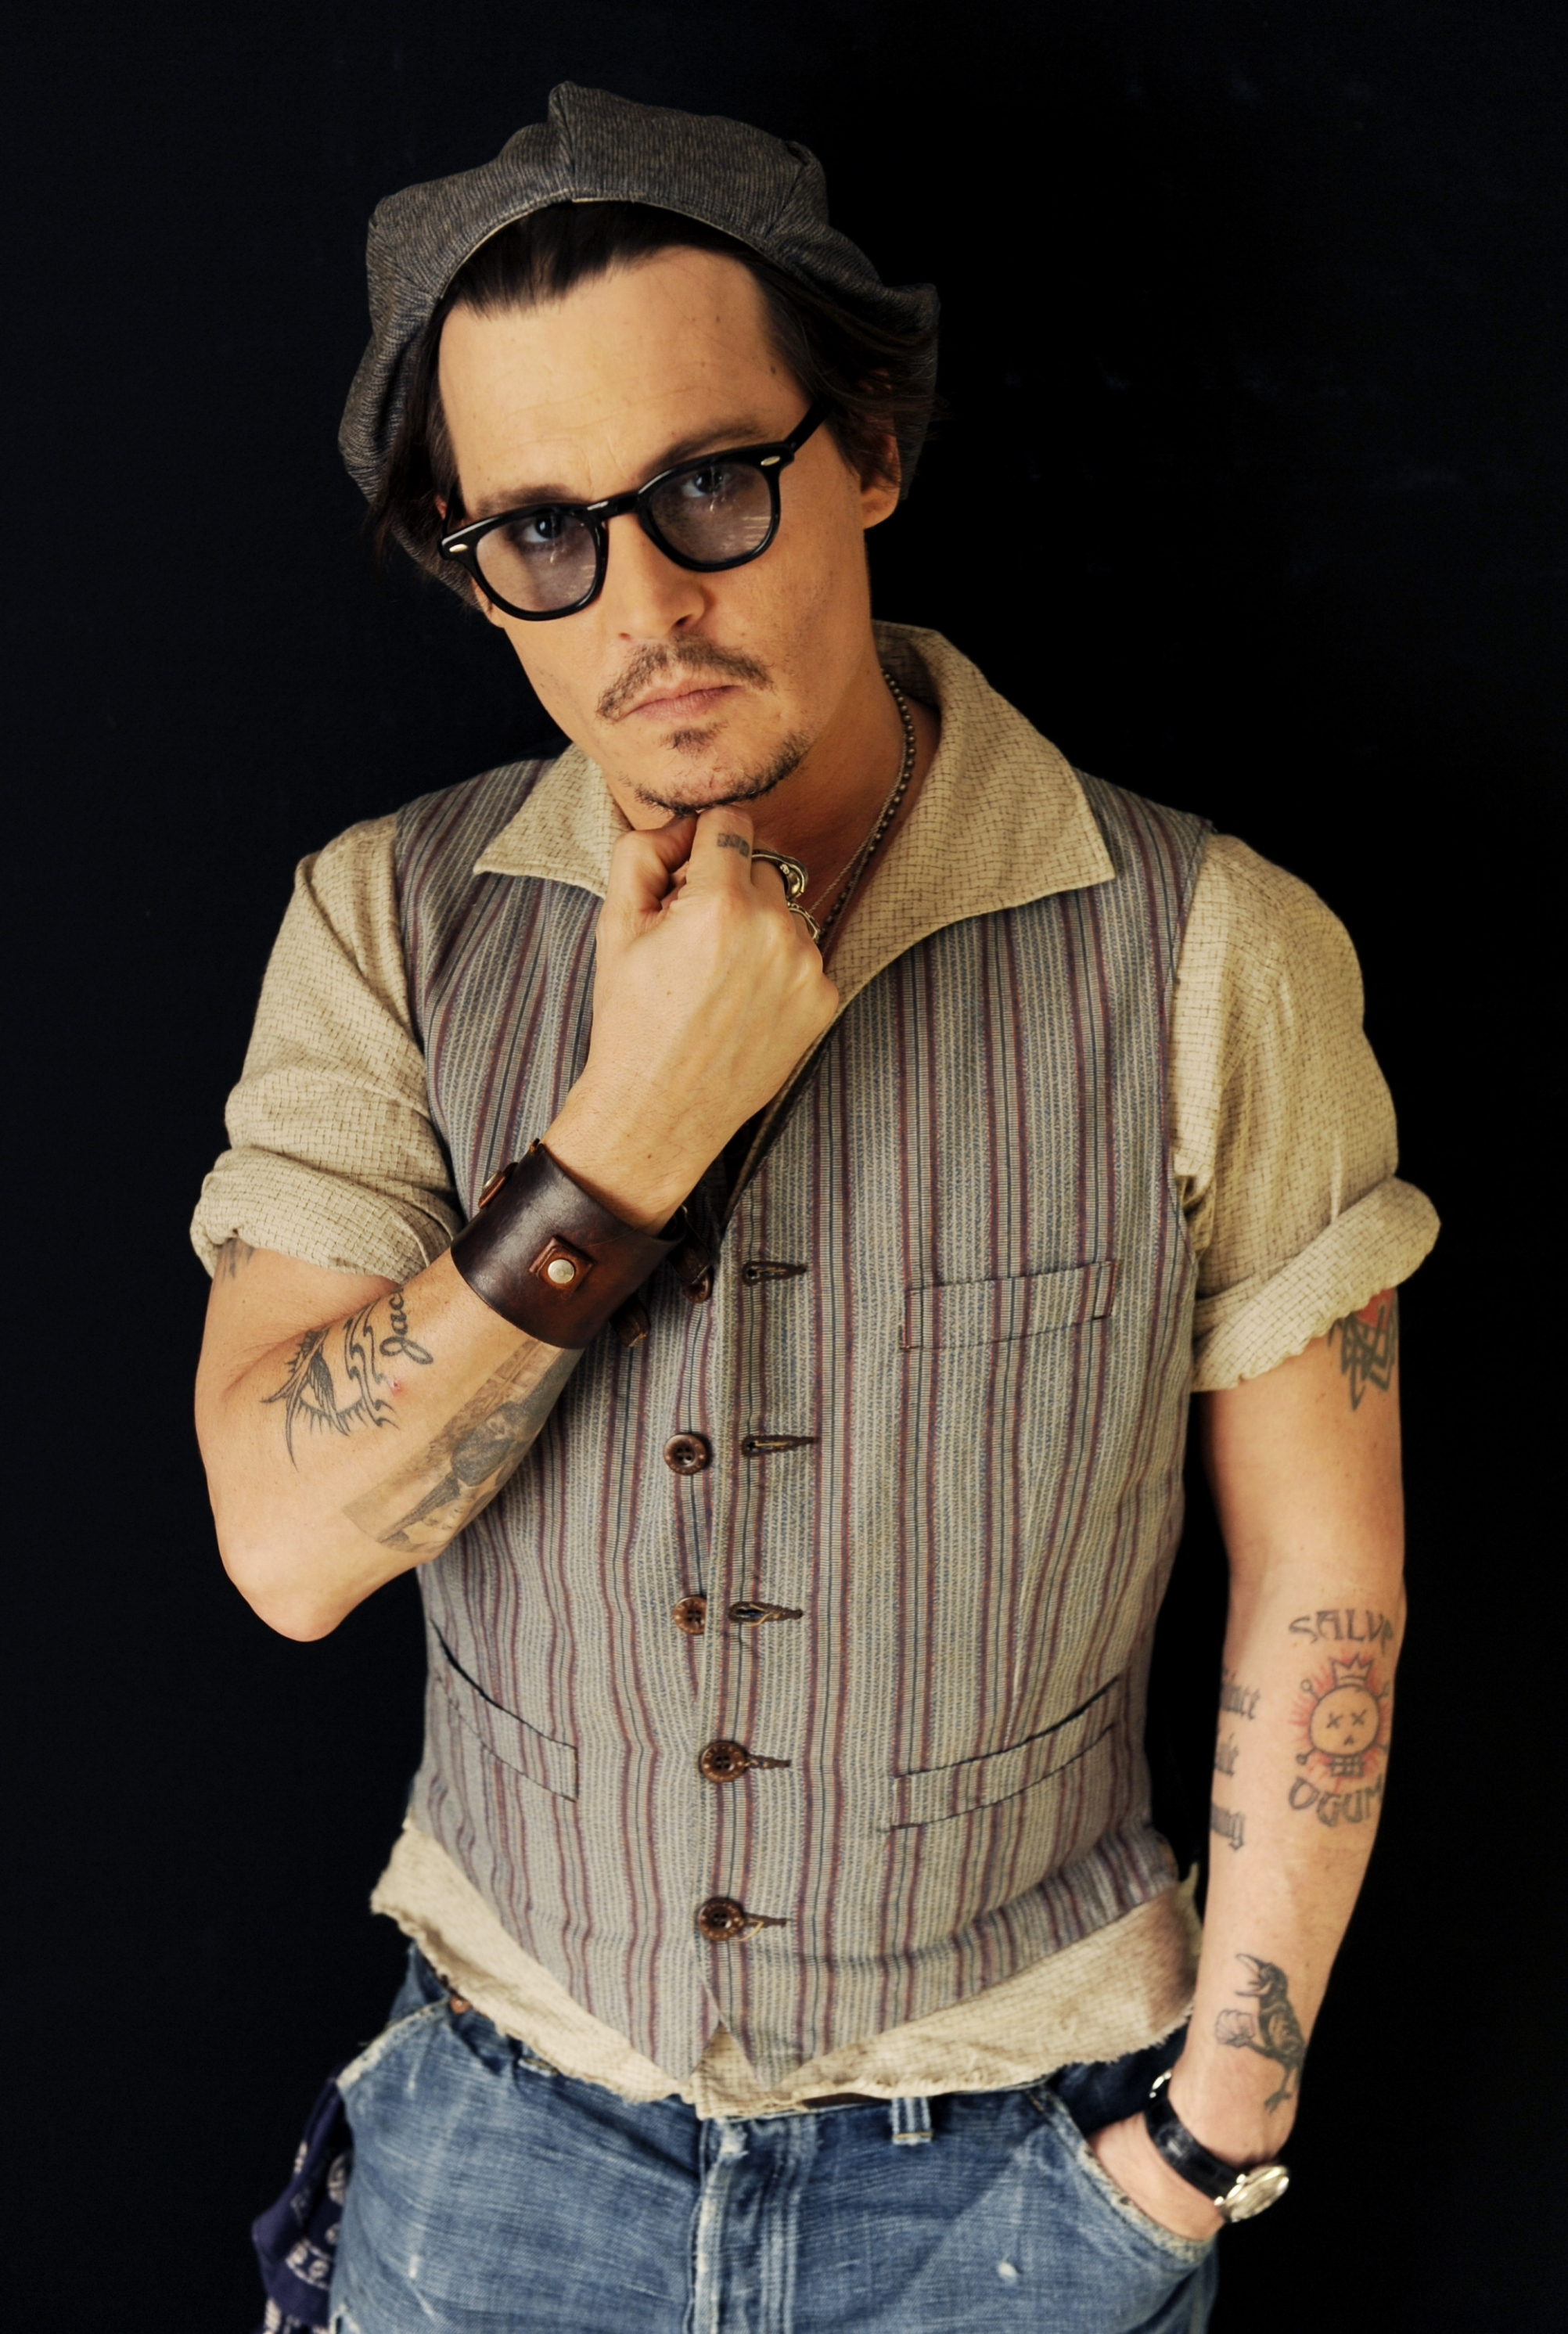 Johnny Depp photo #379035